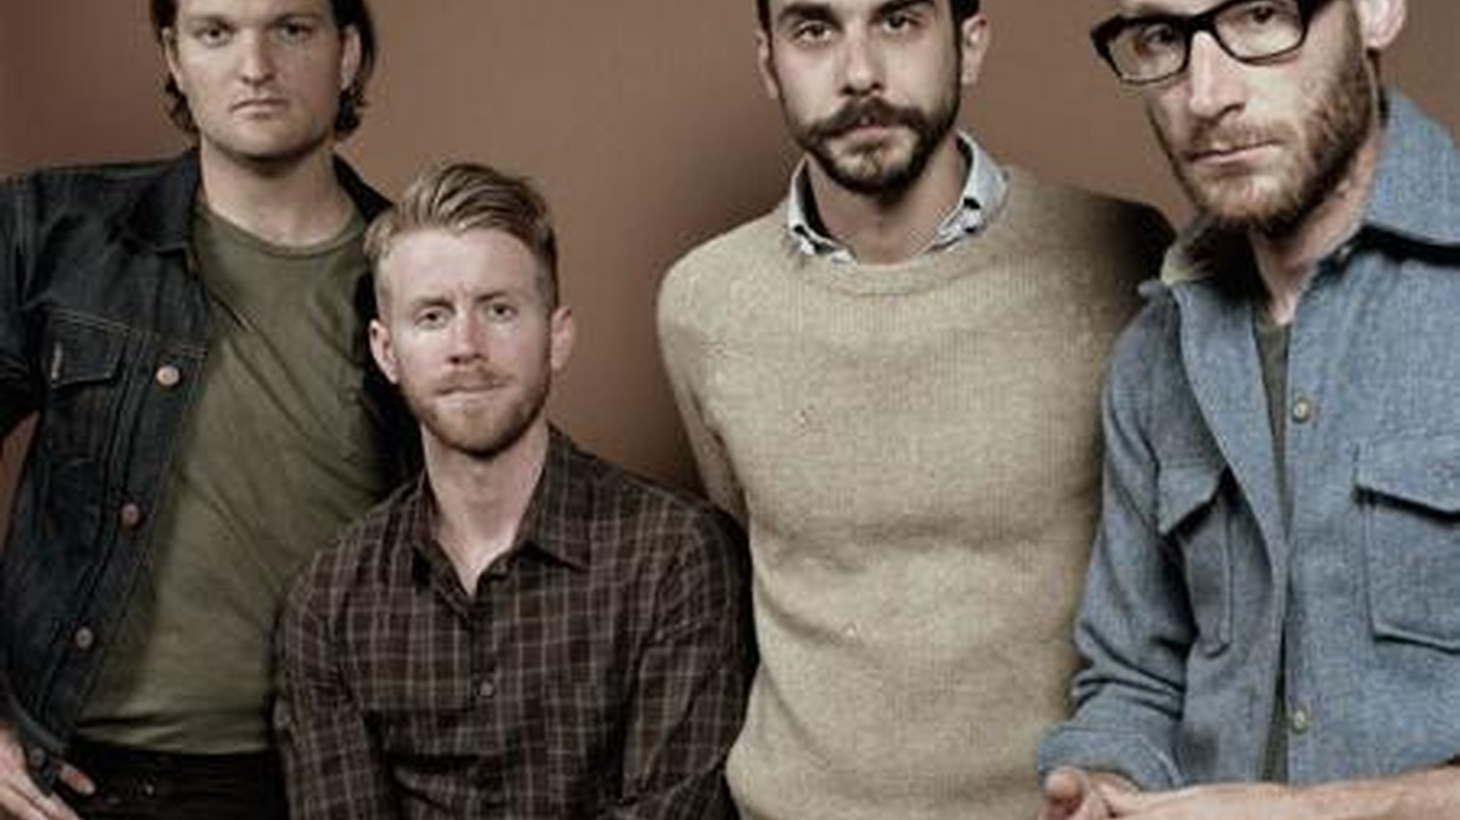 """Cold War Kids are one of LA's most successful indie bands in recent years and their new release """"Mine is Yours"""" marks a departure into more personal songwriting. We're eager to hear the new songs live on Morning Becomes Eclectic at 11:15am."""